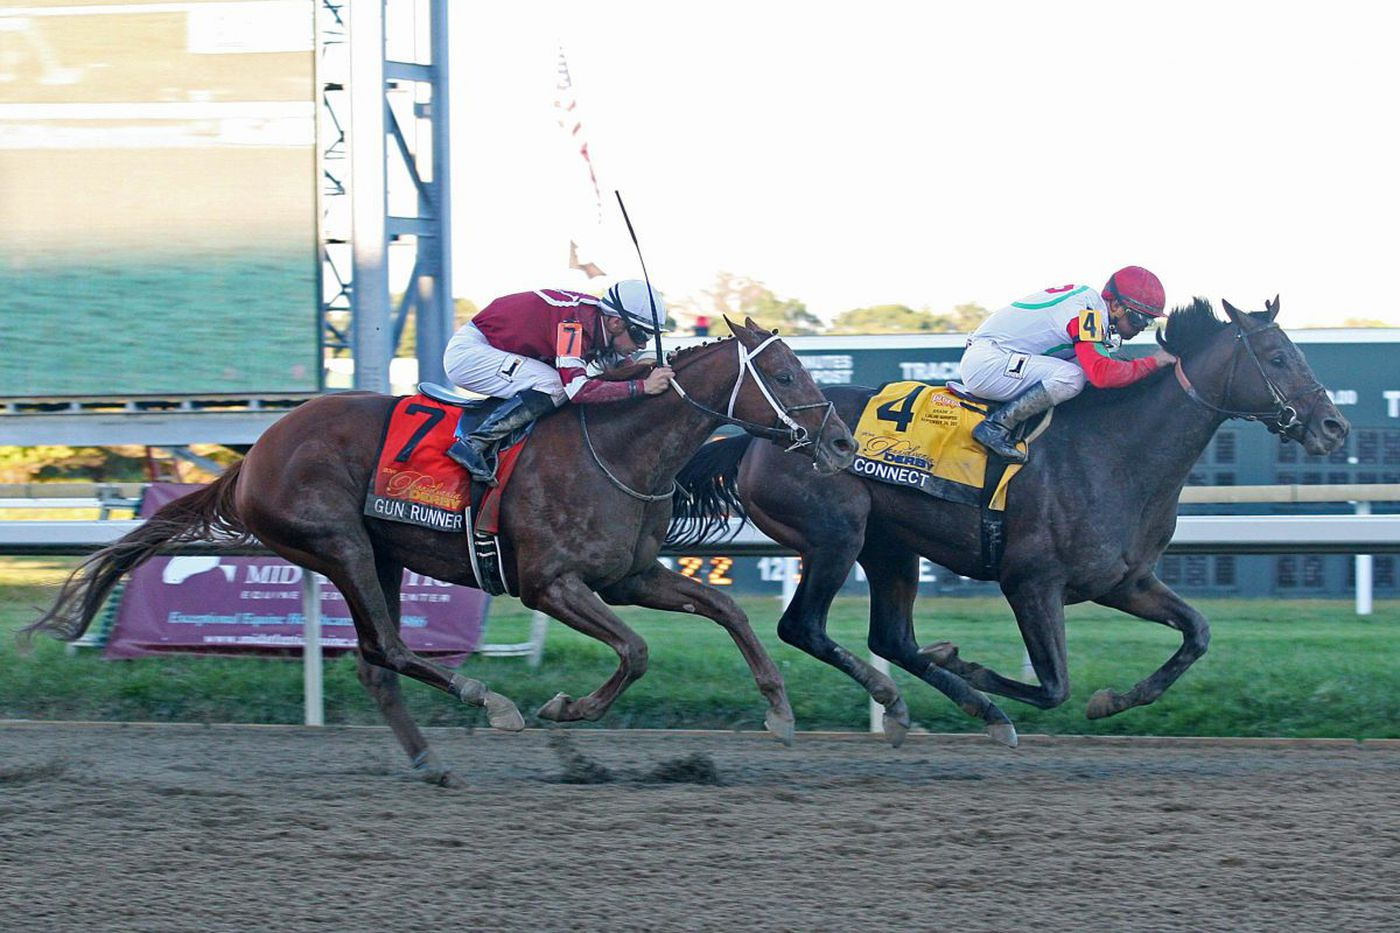 Pennsylvania Derby firmly on national horse-racing map